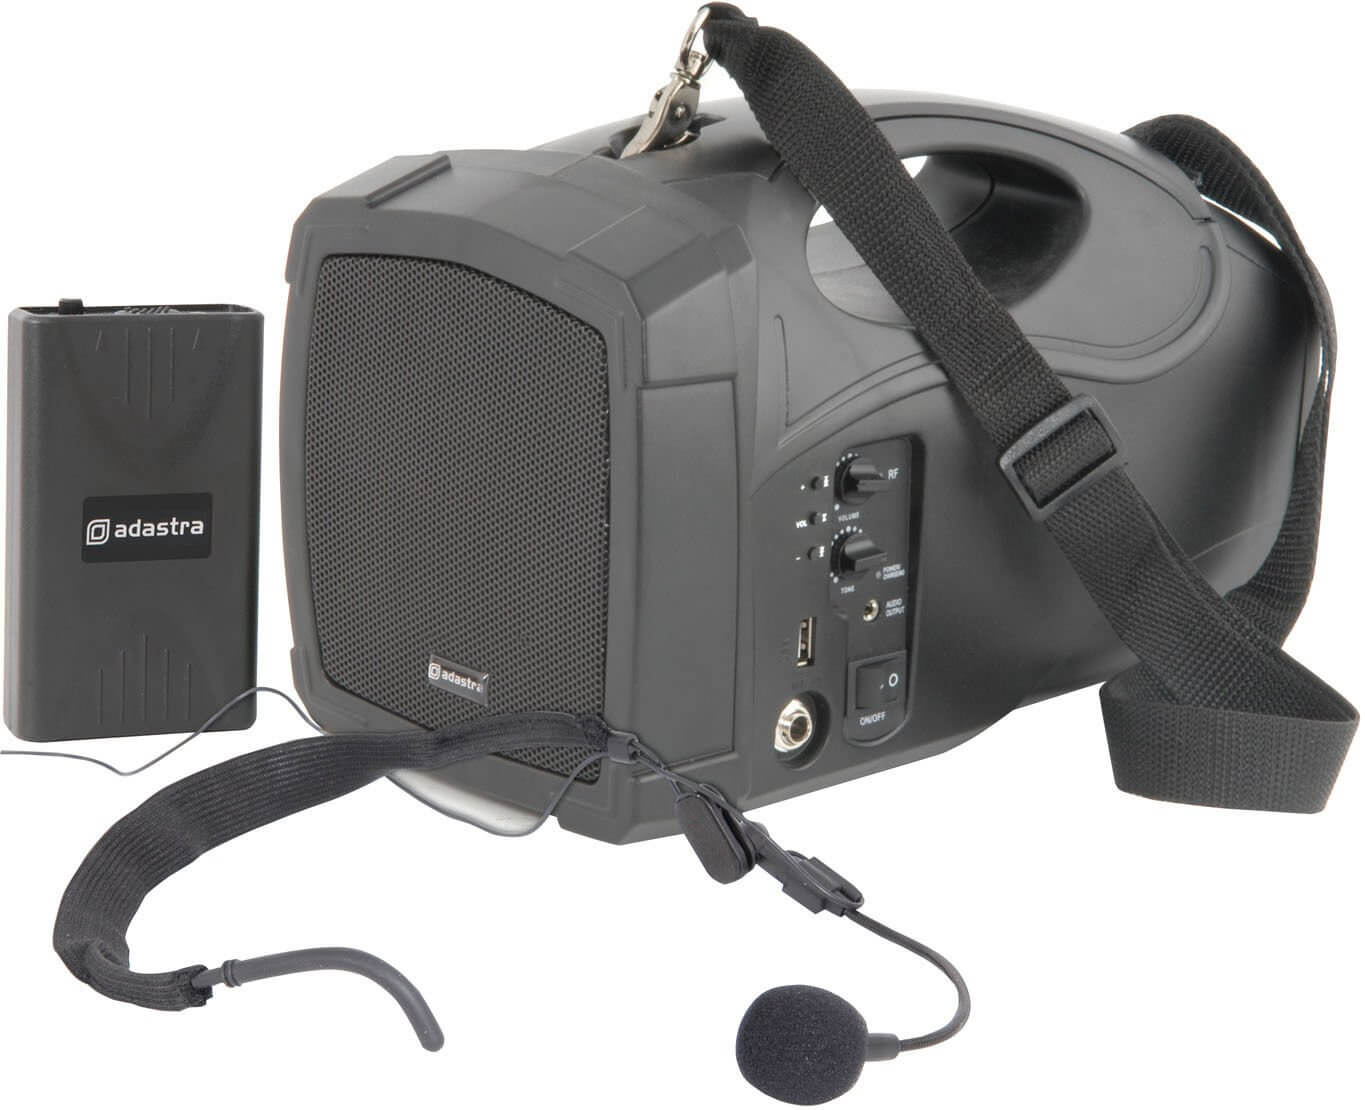 Adastra H25 PA System Headset Battery Dual Handheld Microphone Portable Aerobic